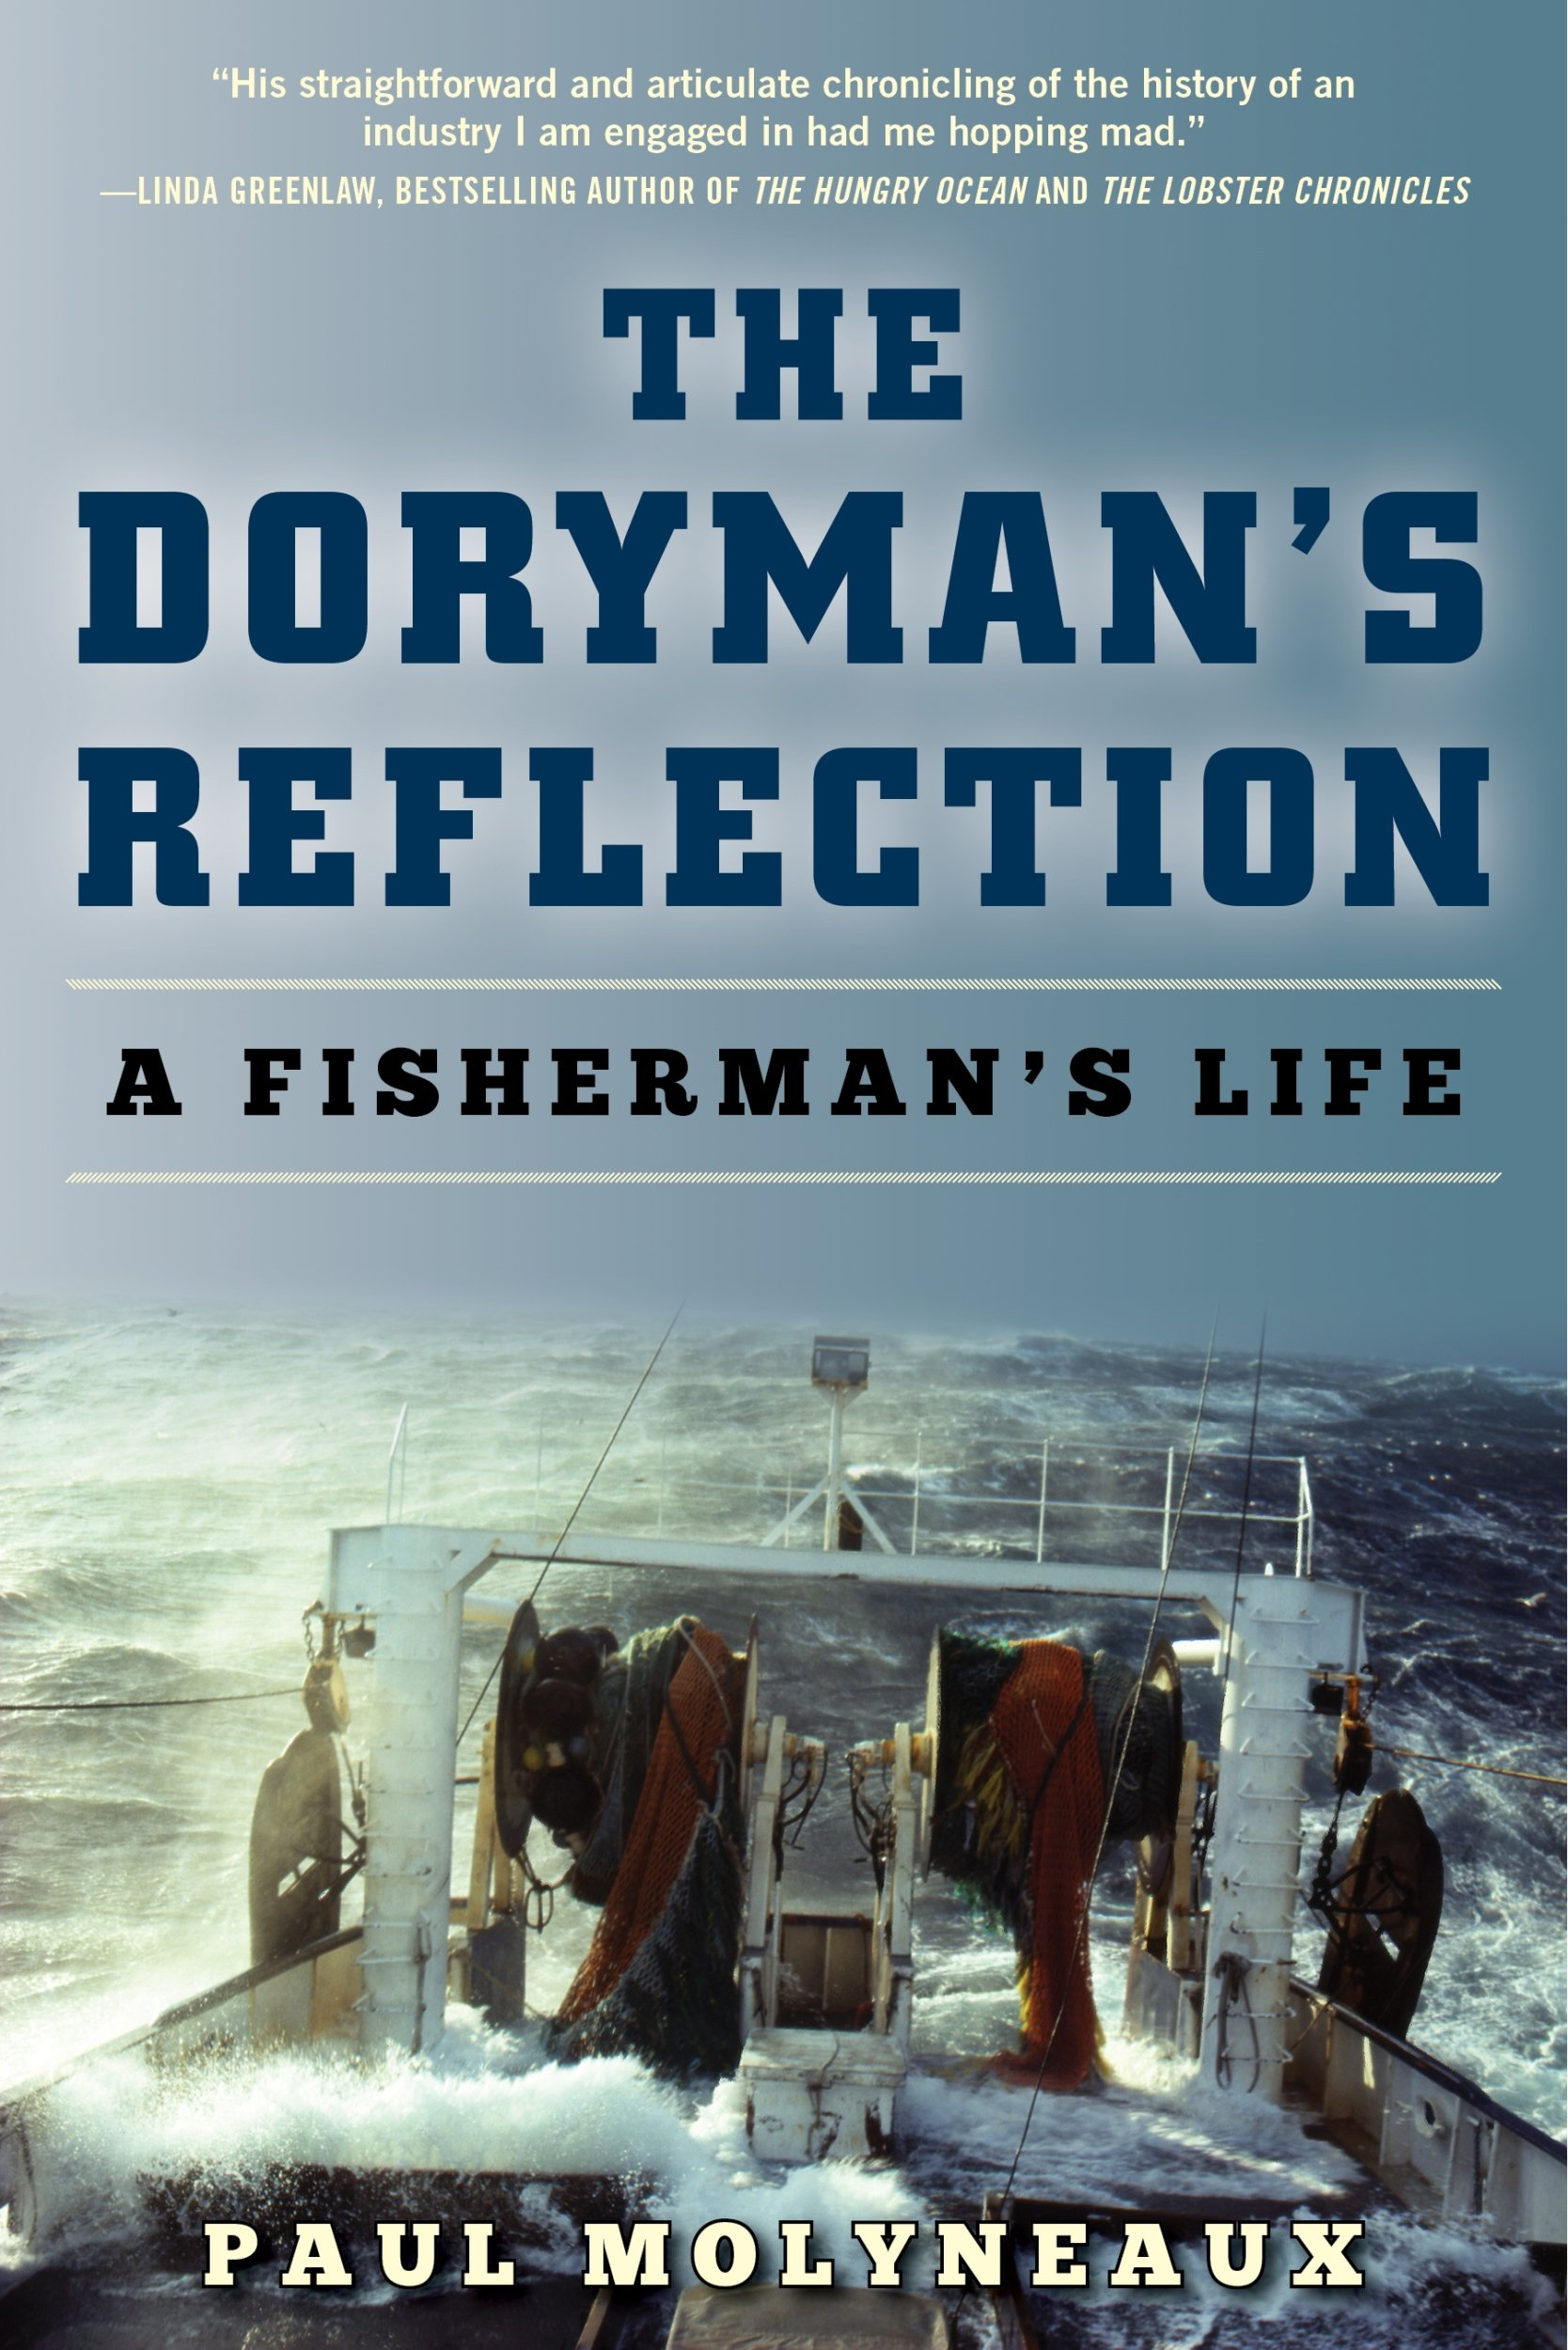 The Doryman's Reflection: A Fisherman's Life